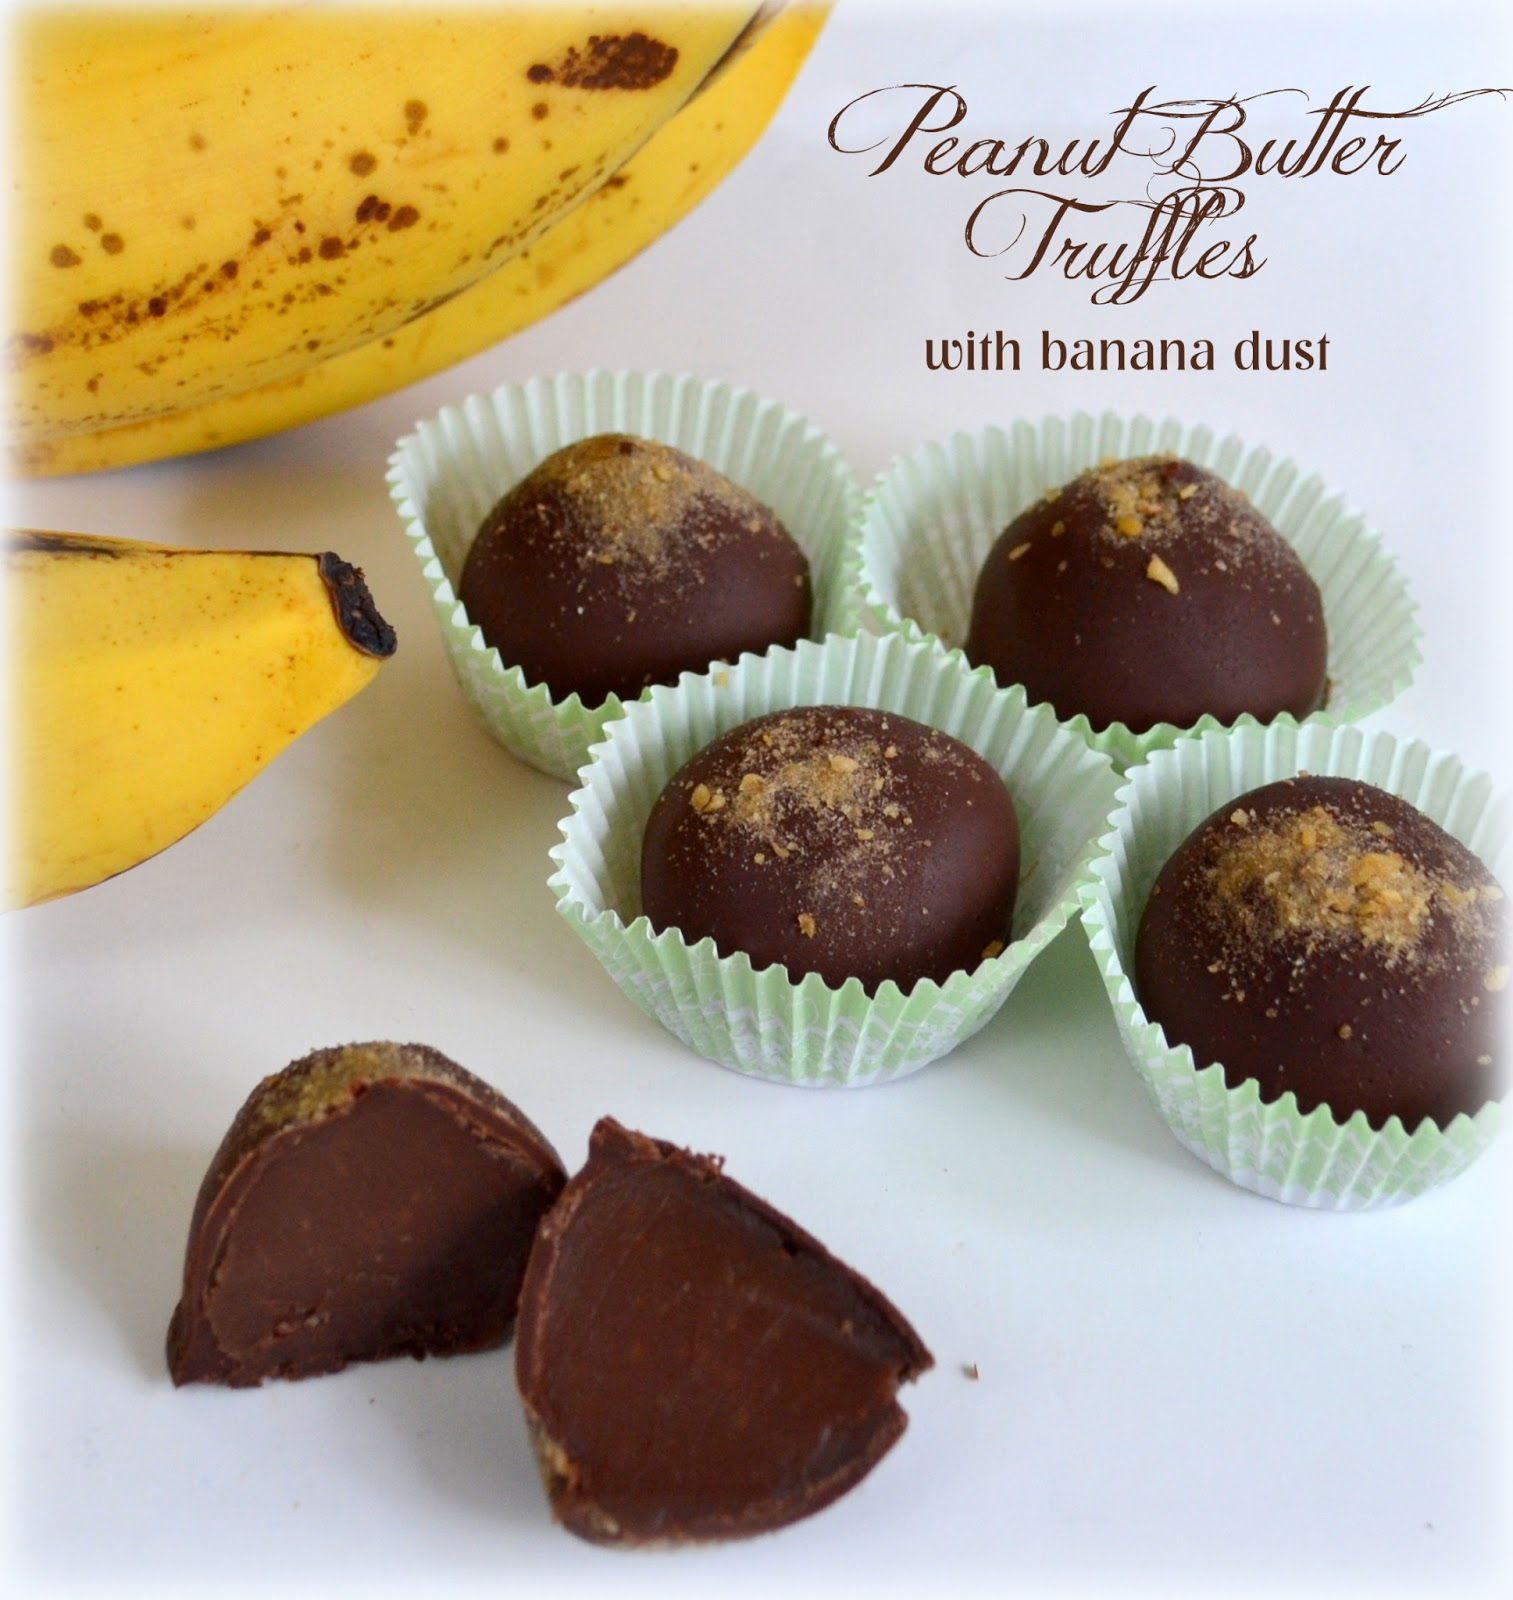 ... Milk Chocolate & Peanut Butter Truffles (garnished with Banana Dust